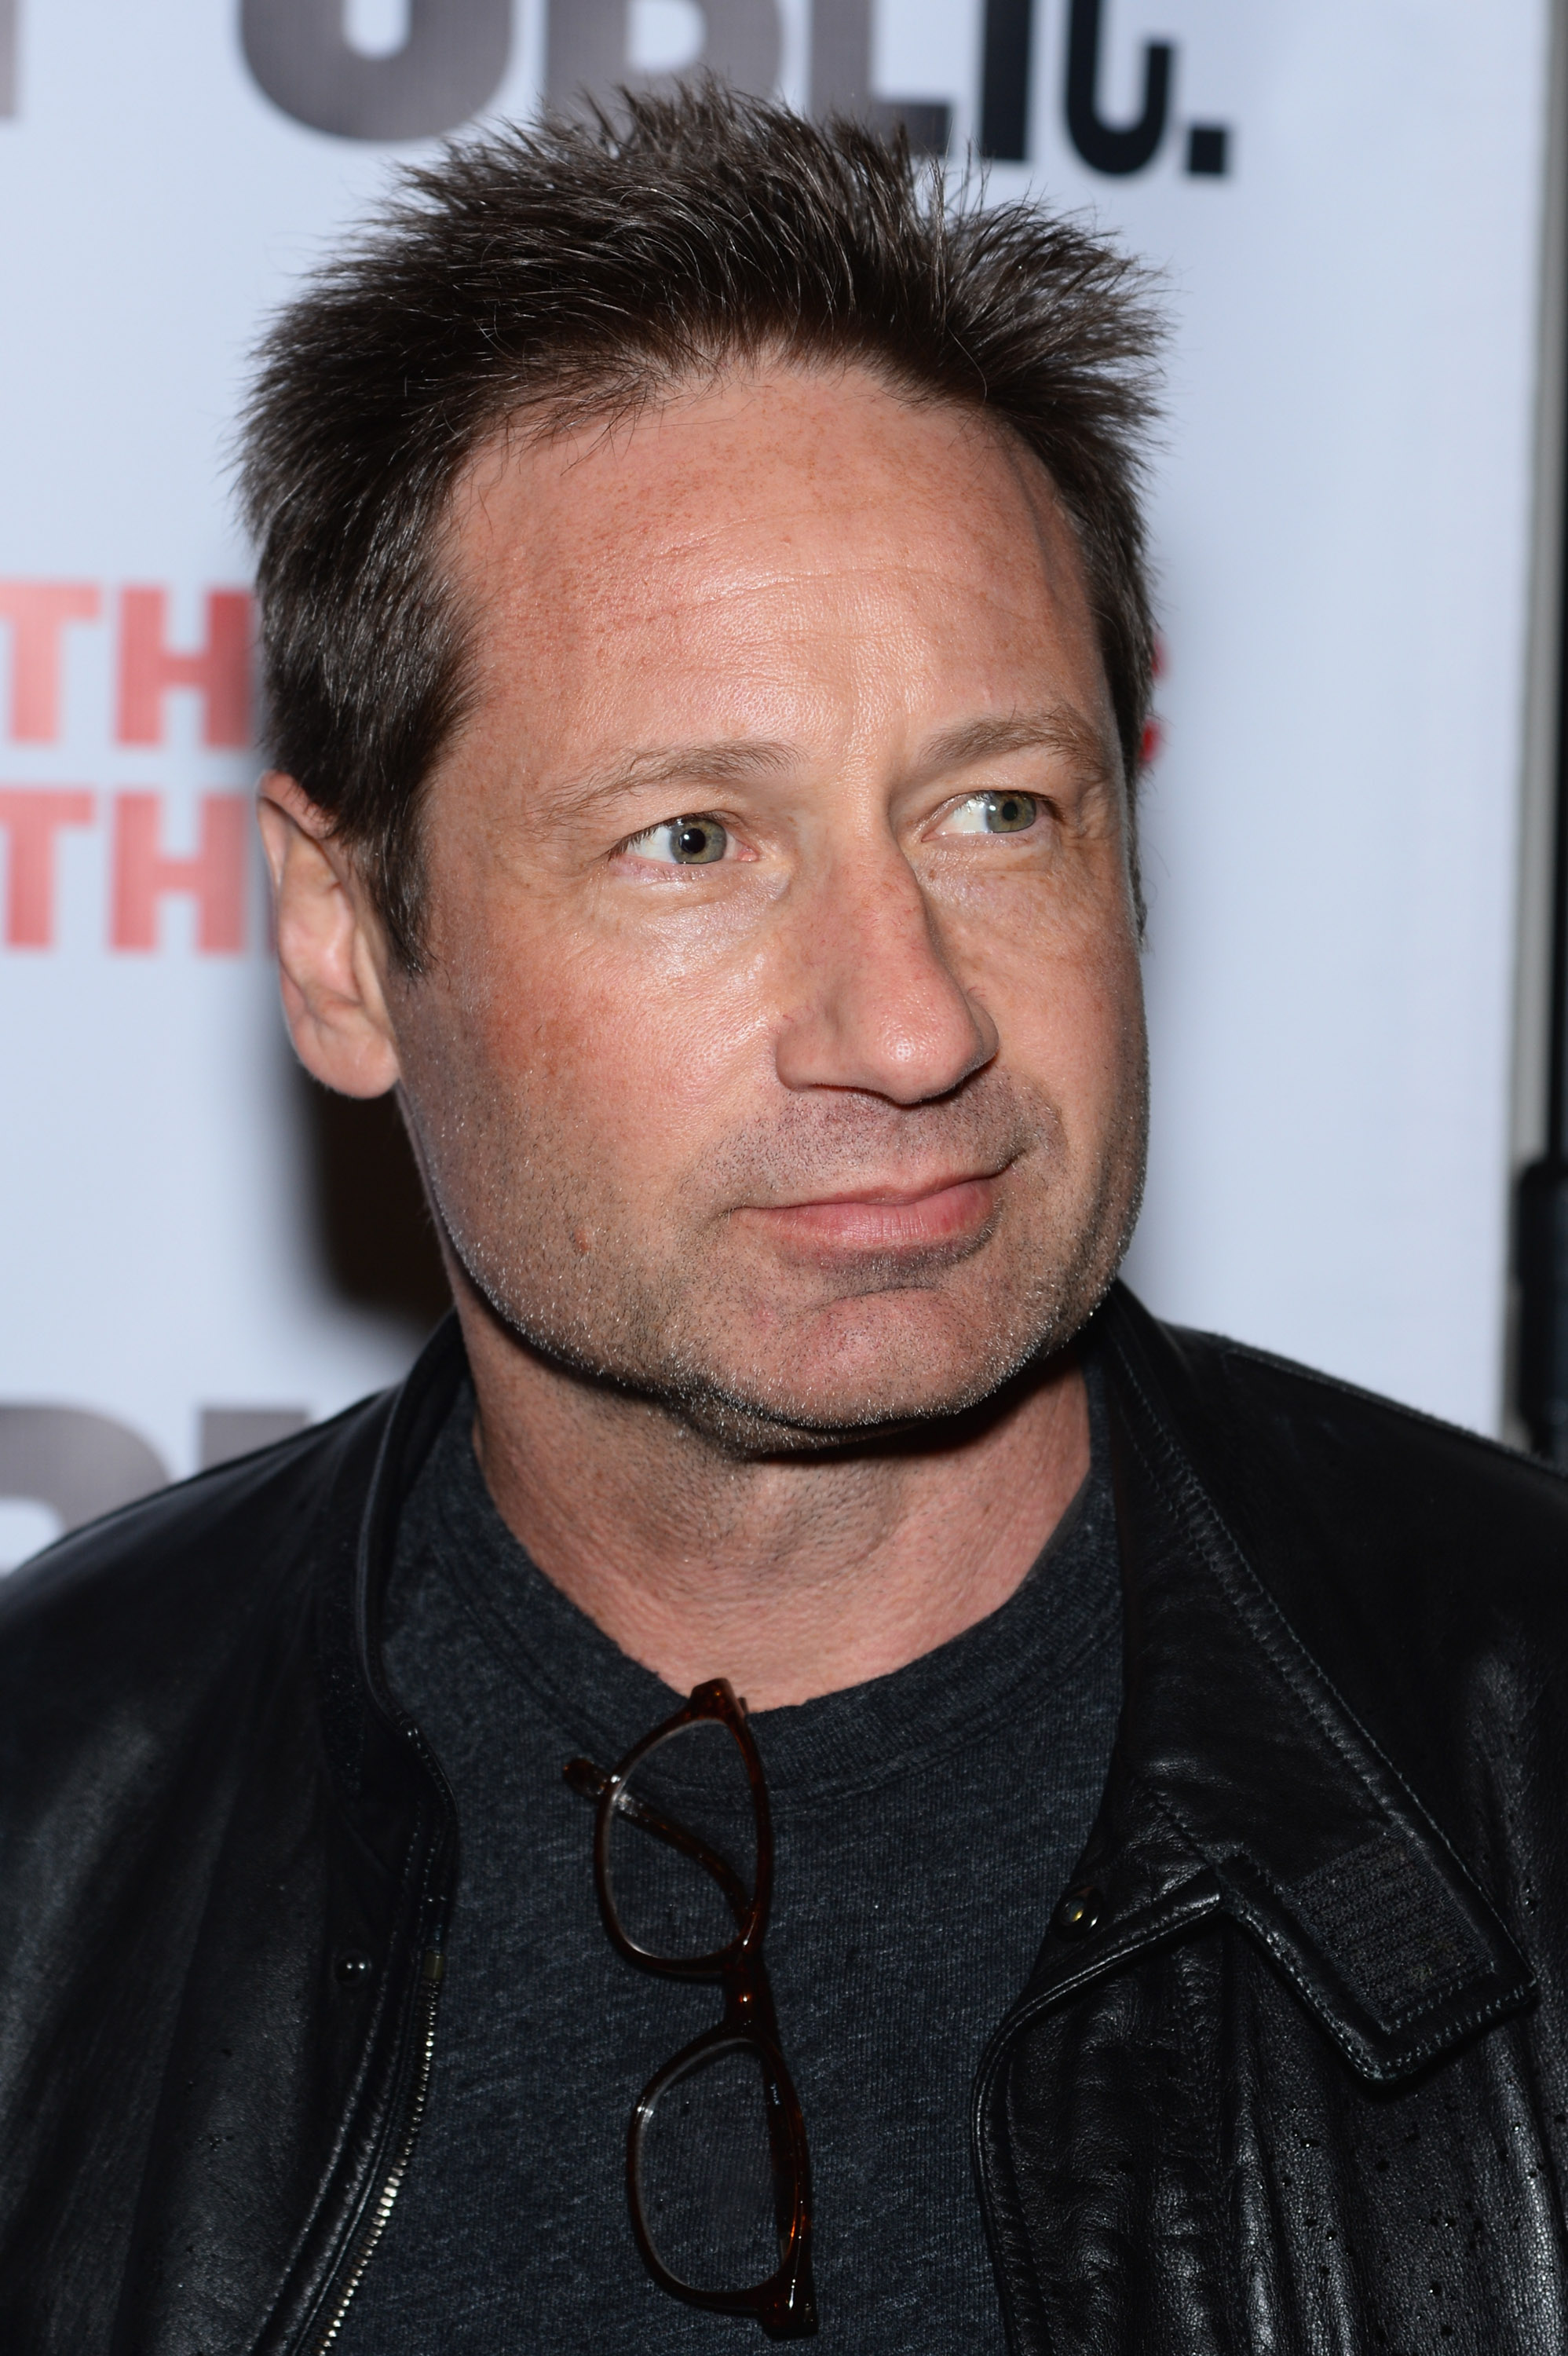 HQ David Duchovny Wallpapers | File 844.69Kb